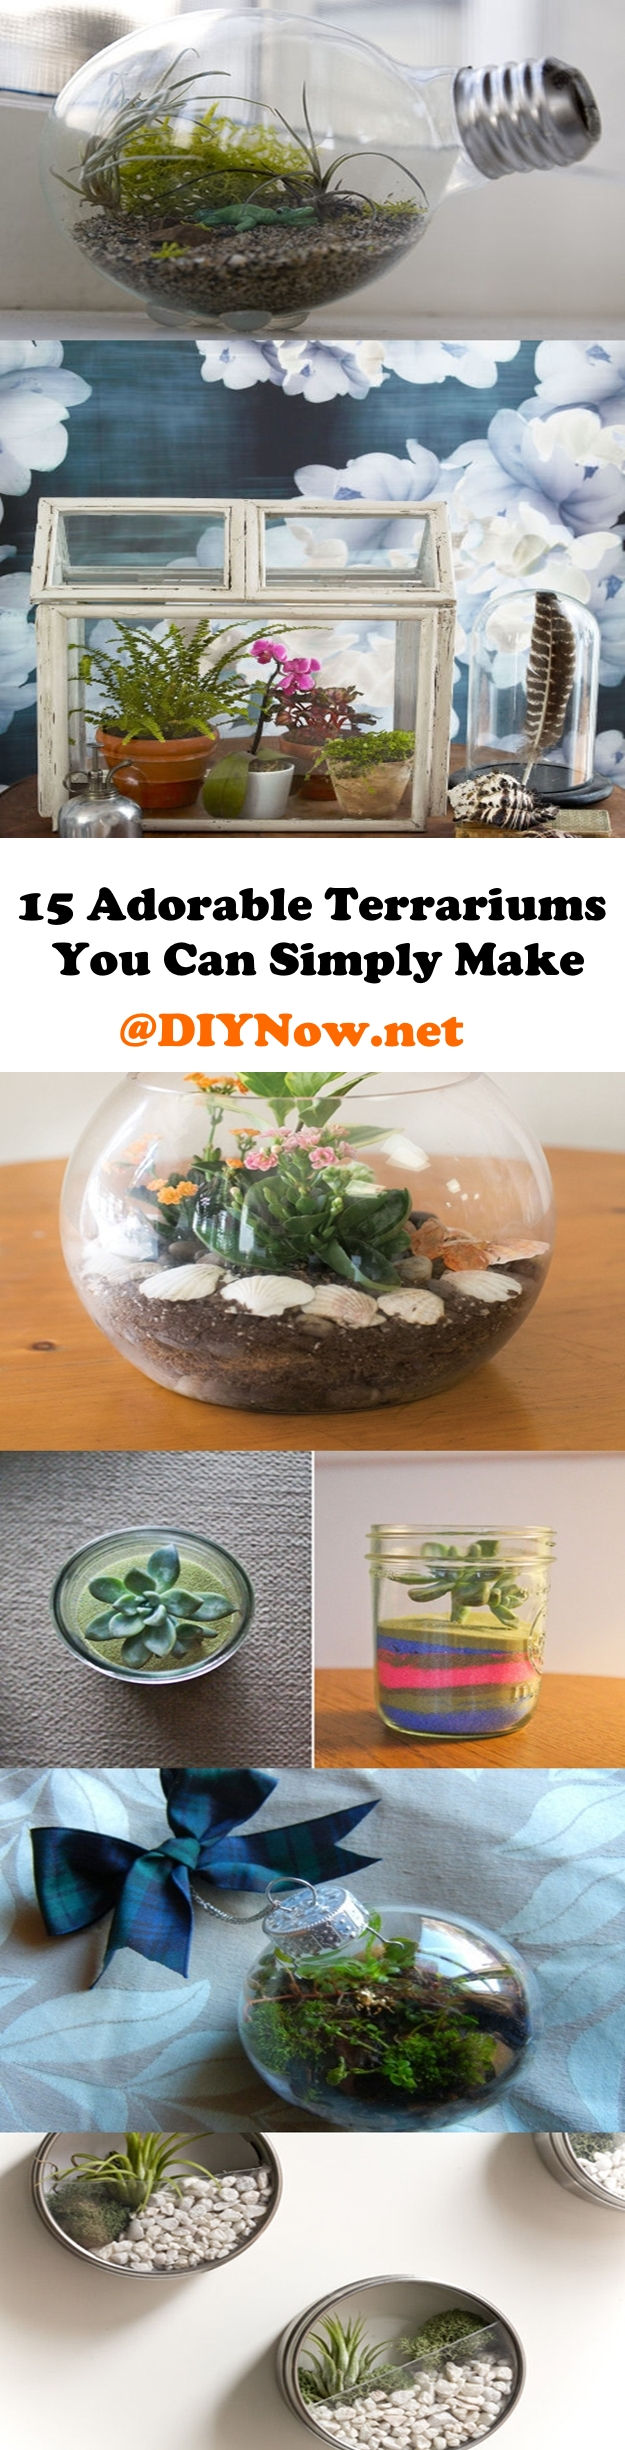 15 Adorable Terrariums You Can Simply Make